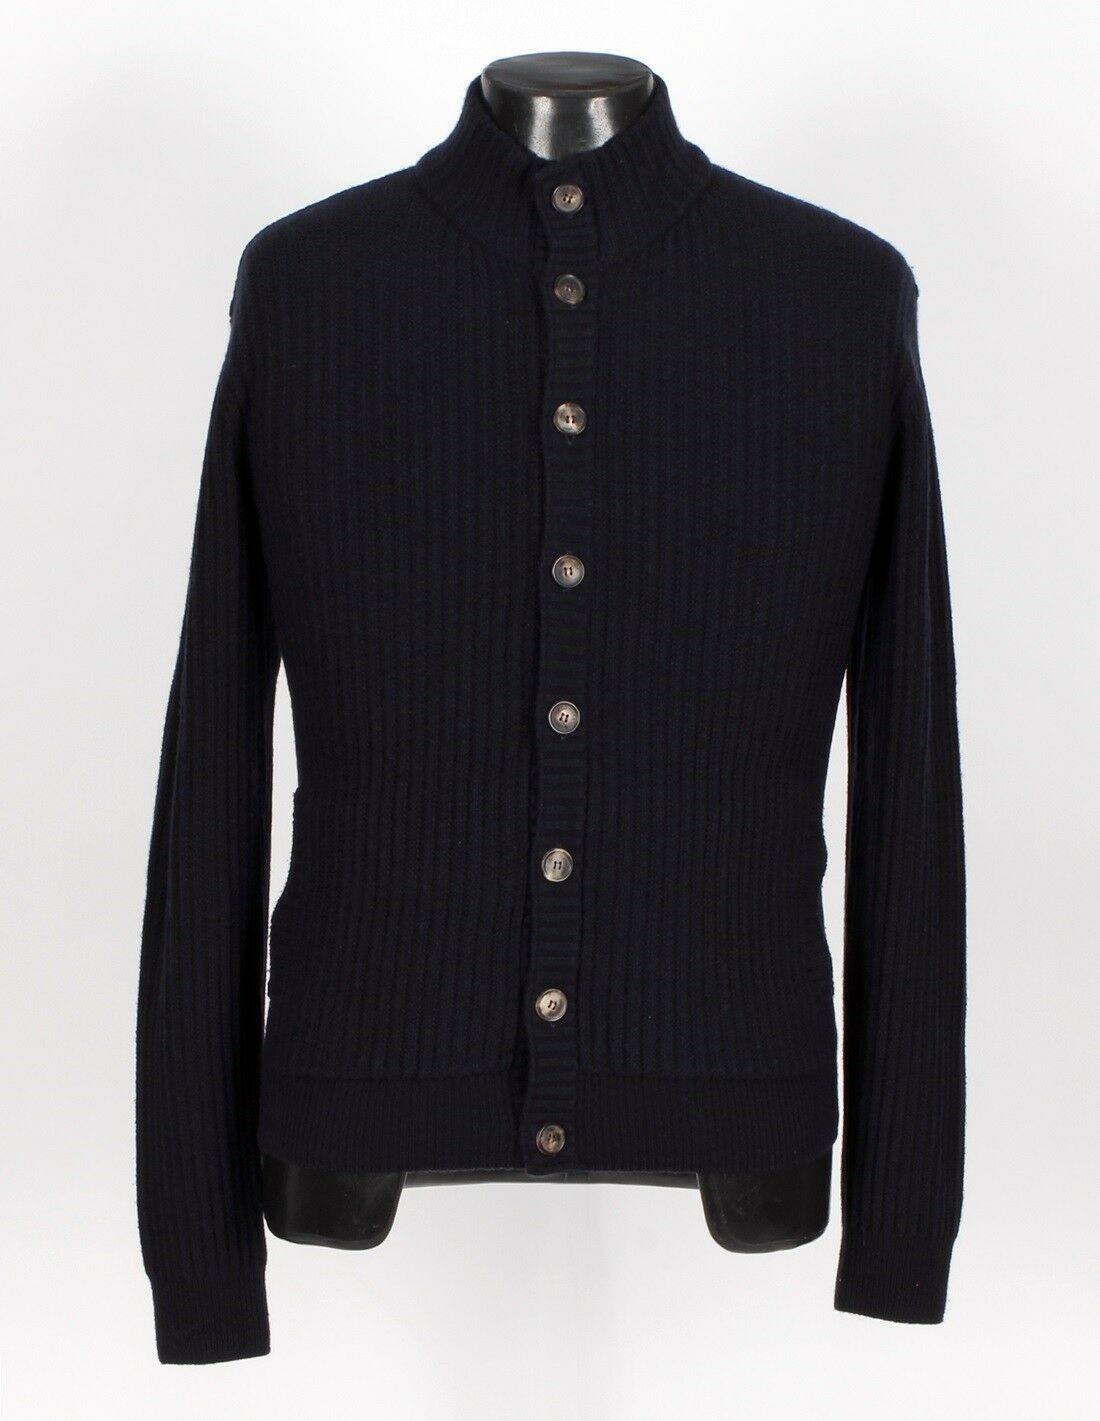 2575 - LORO PIANA 100% BABY CASHMERE Cardigan Sweater - Blau - 48 M Medium